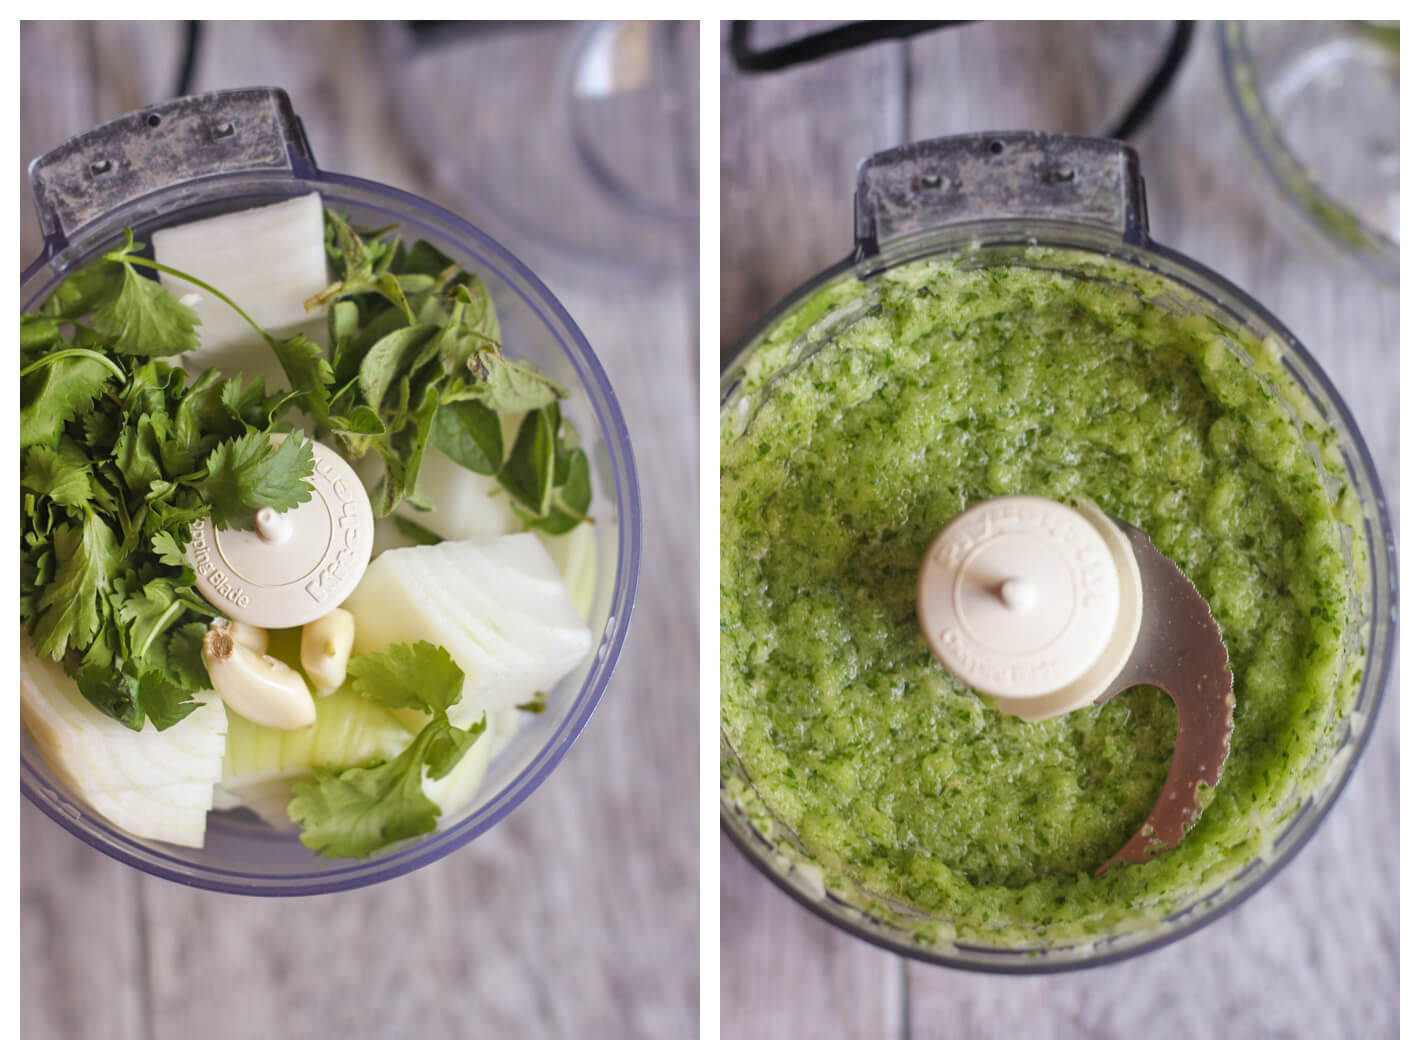 Two images. Image on left: cilantro, oregano, onion, and garlic in food processor before processing. Image Right: Ingredients blended into paste in food processor